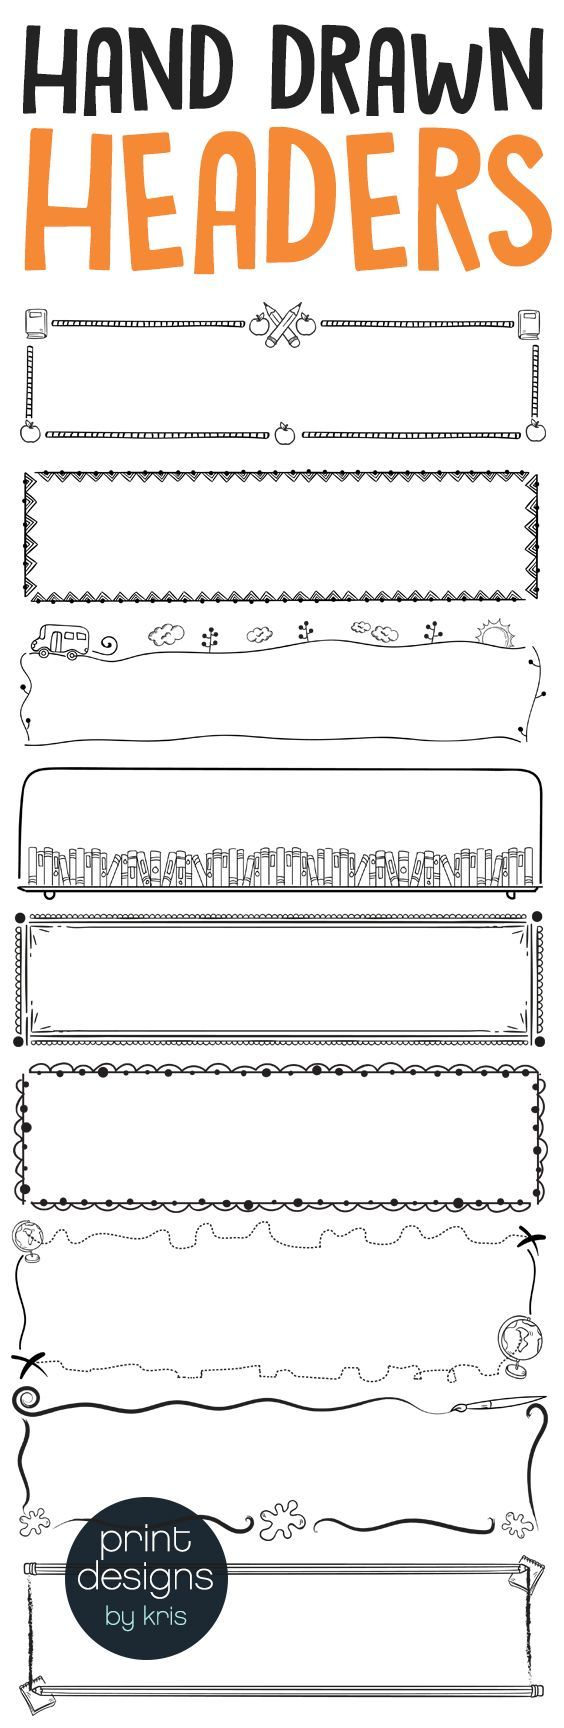 small resolution of Hand drawn header boxes perfect for dressing up a worksheet